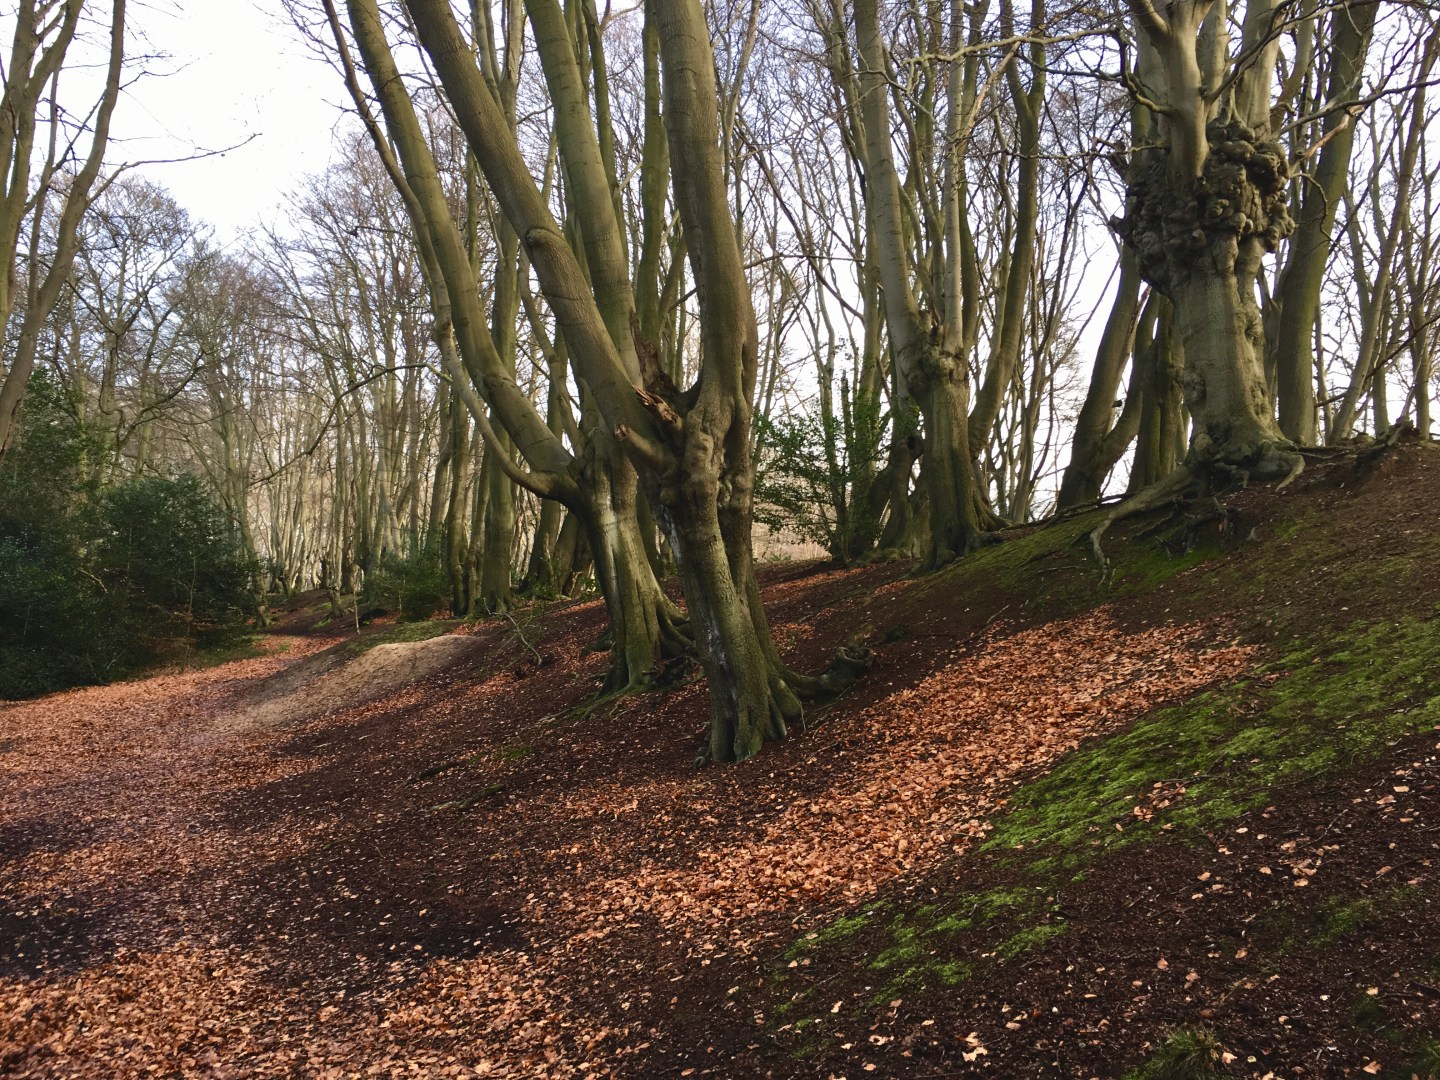 London Day Trip: Hiking in Epping Forest